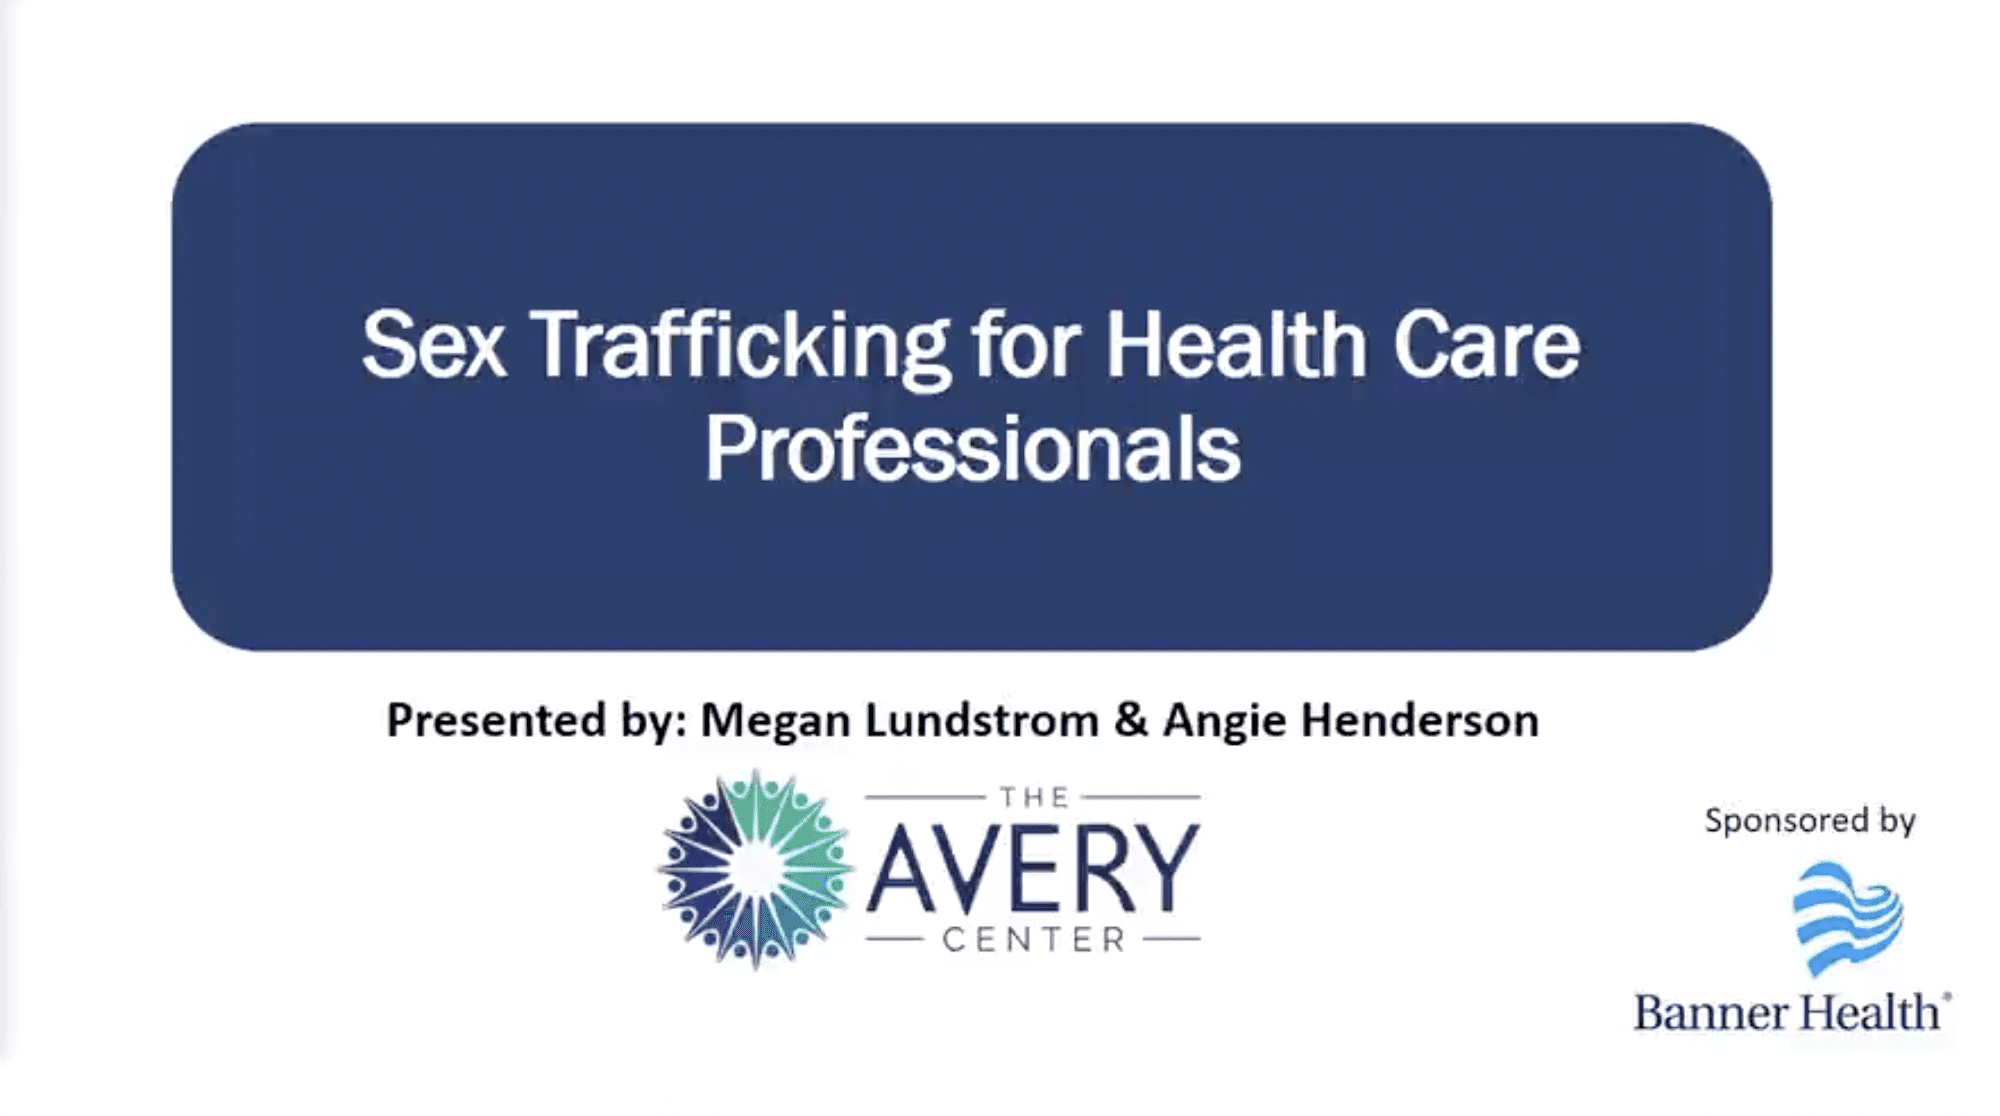 Sex Trafficking Training for Health Care Professionals